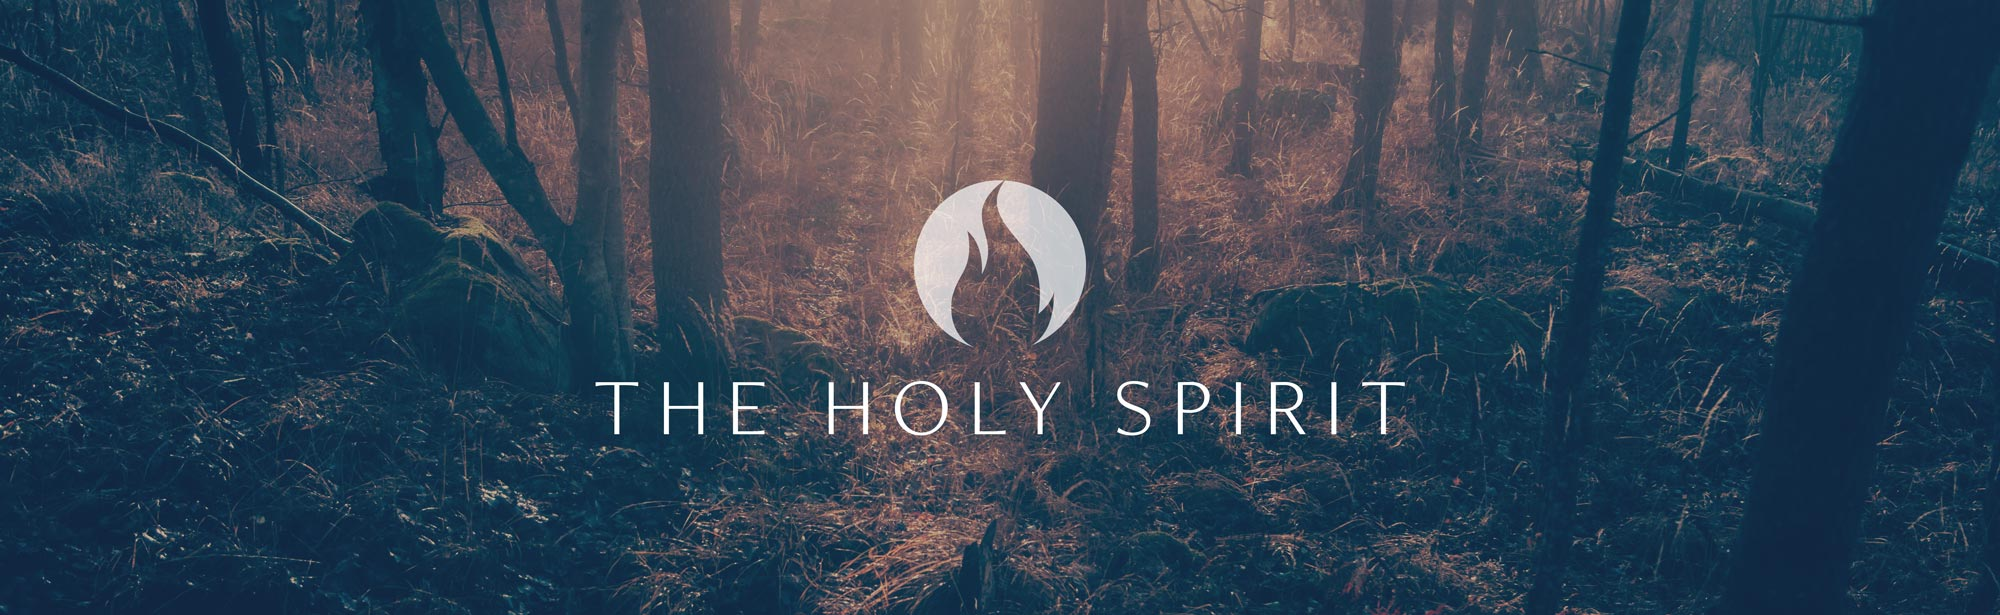 The Holy Spirit - Sermon Series - Grace Community Church